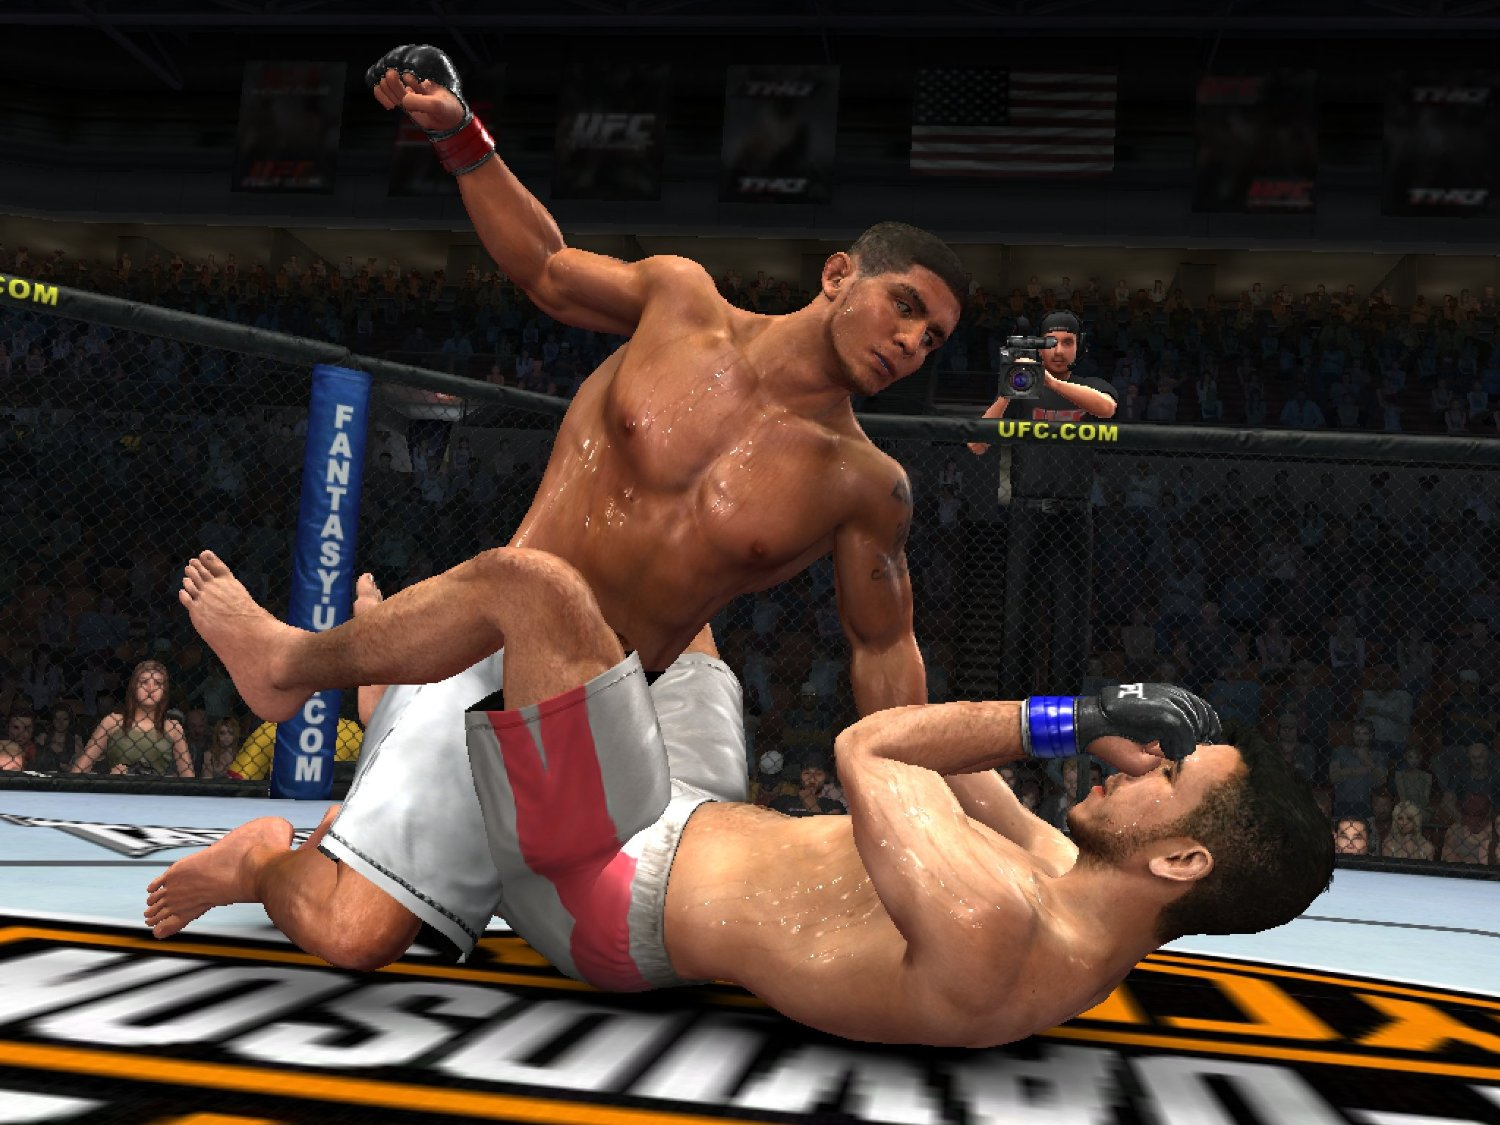 Ufc undisputed 3 is a mixed martial artsvideo game featuring ultimate fighting championship properties and fighters